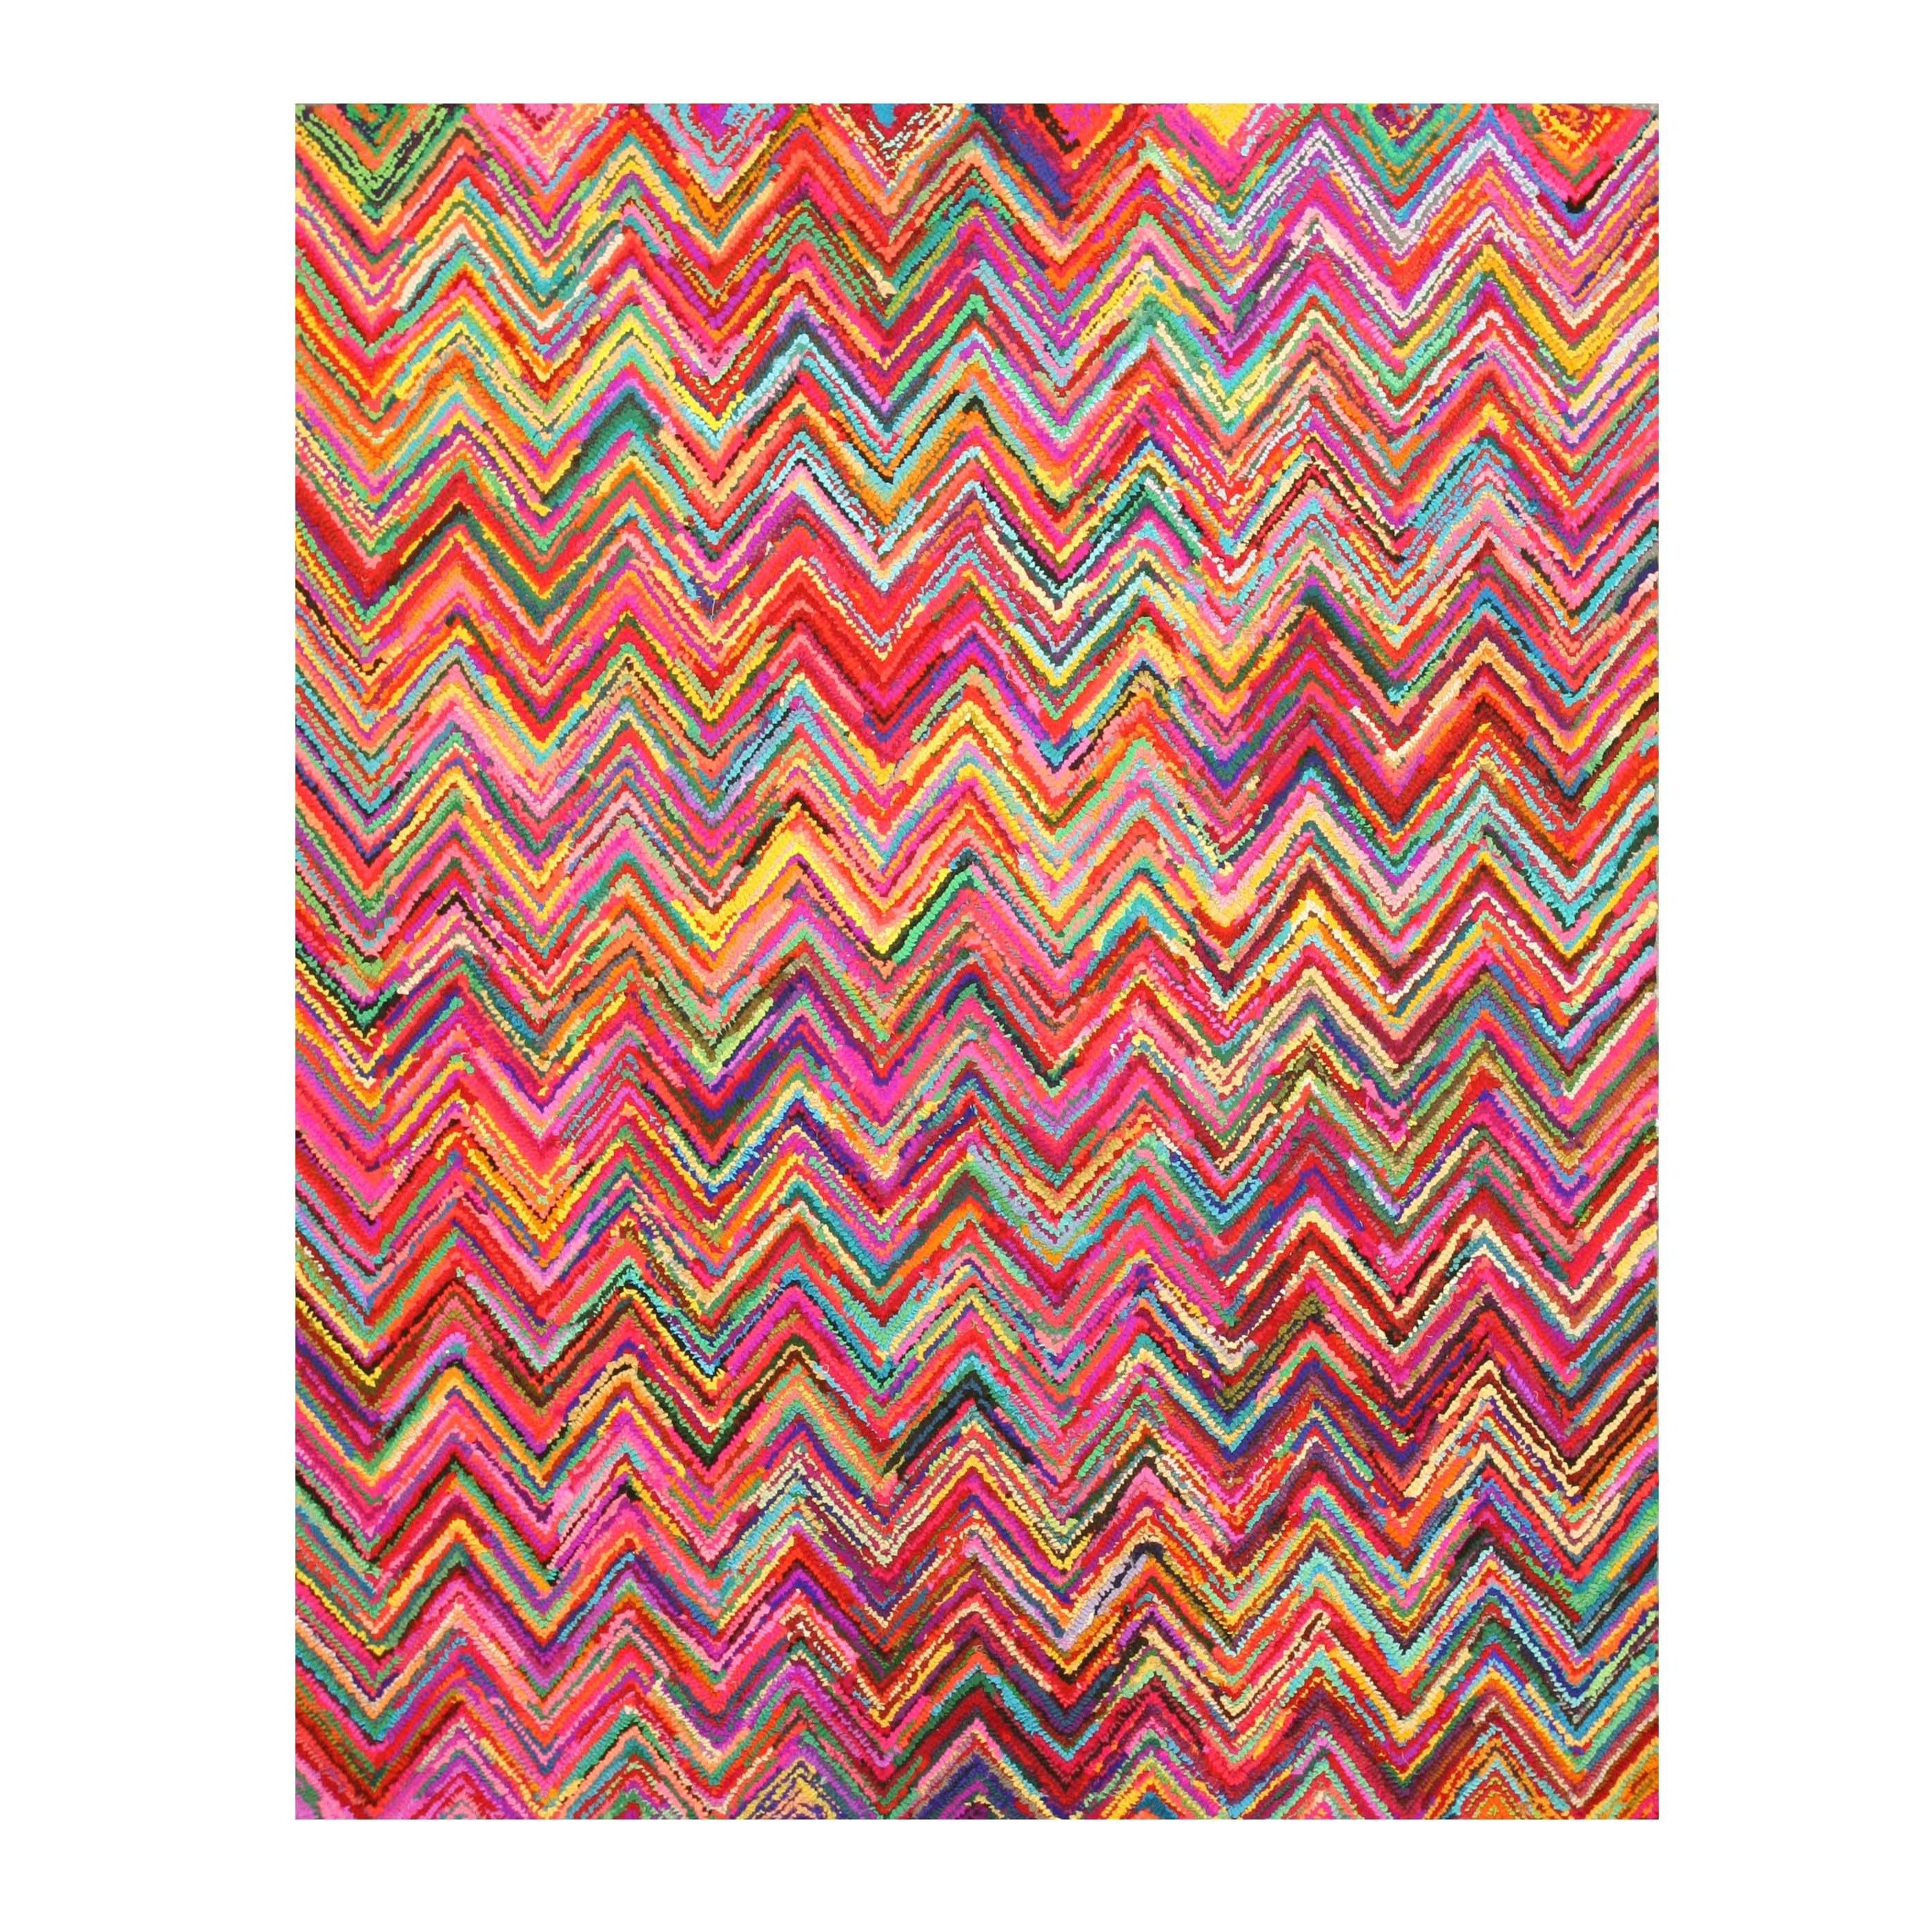 handtufted cotton transitional abstract sari chevron rug (' x   - handtufted cotton transitional abstract sari chevron rug (' x ') by eorc